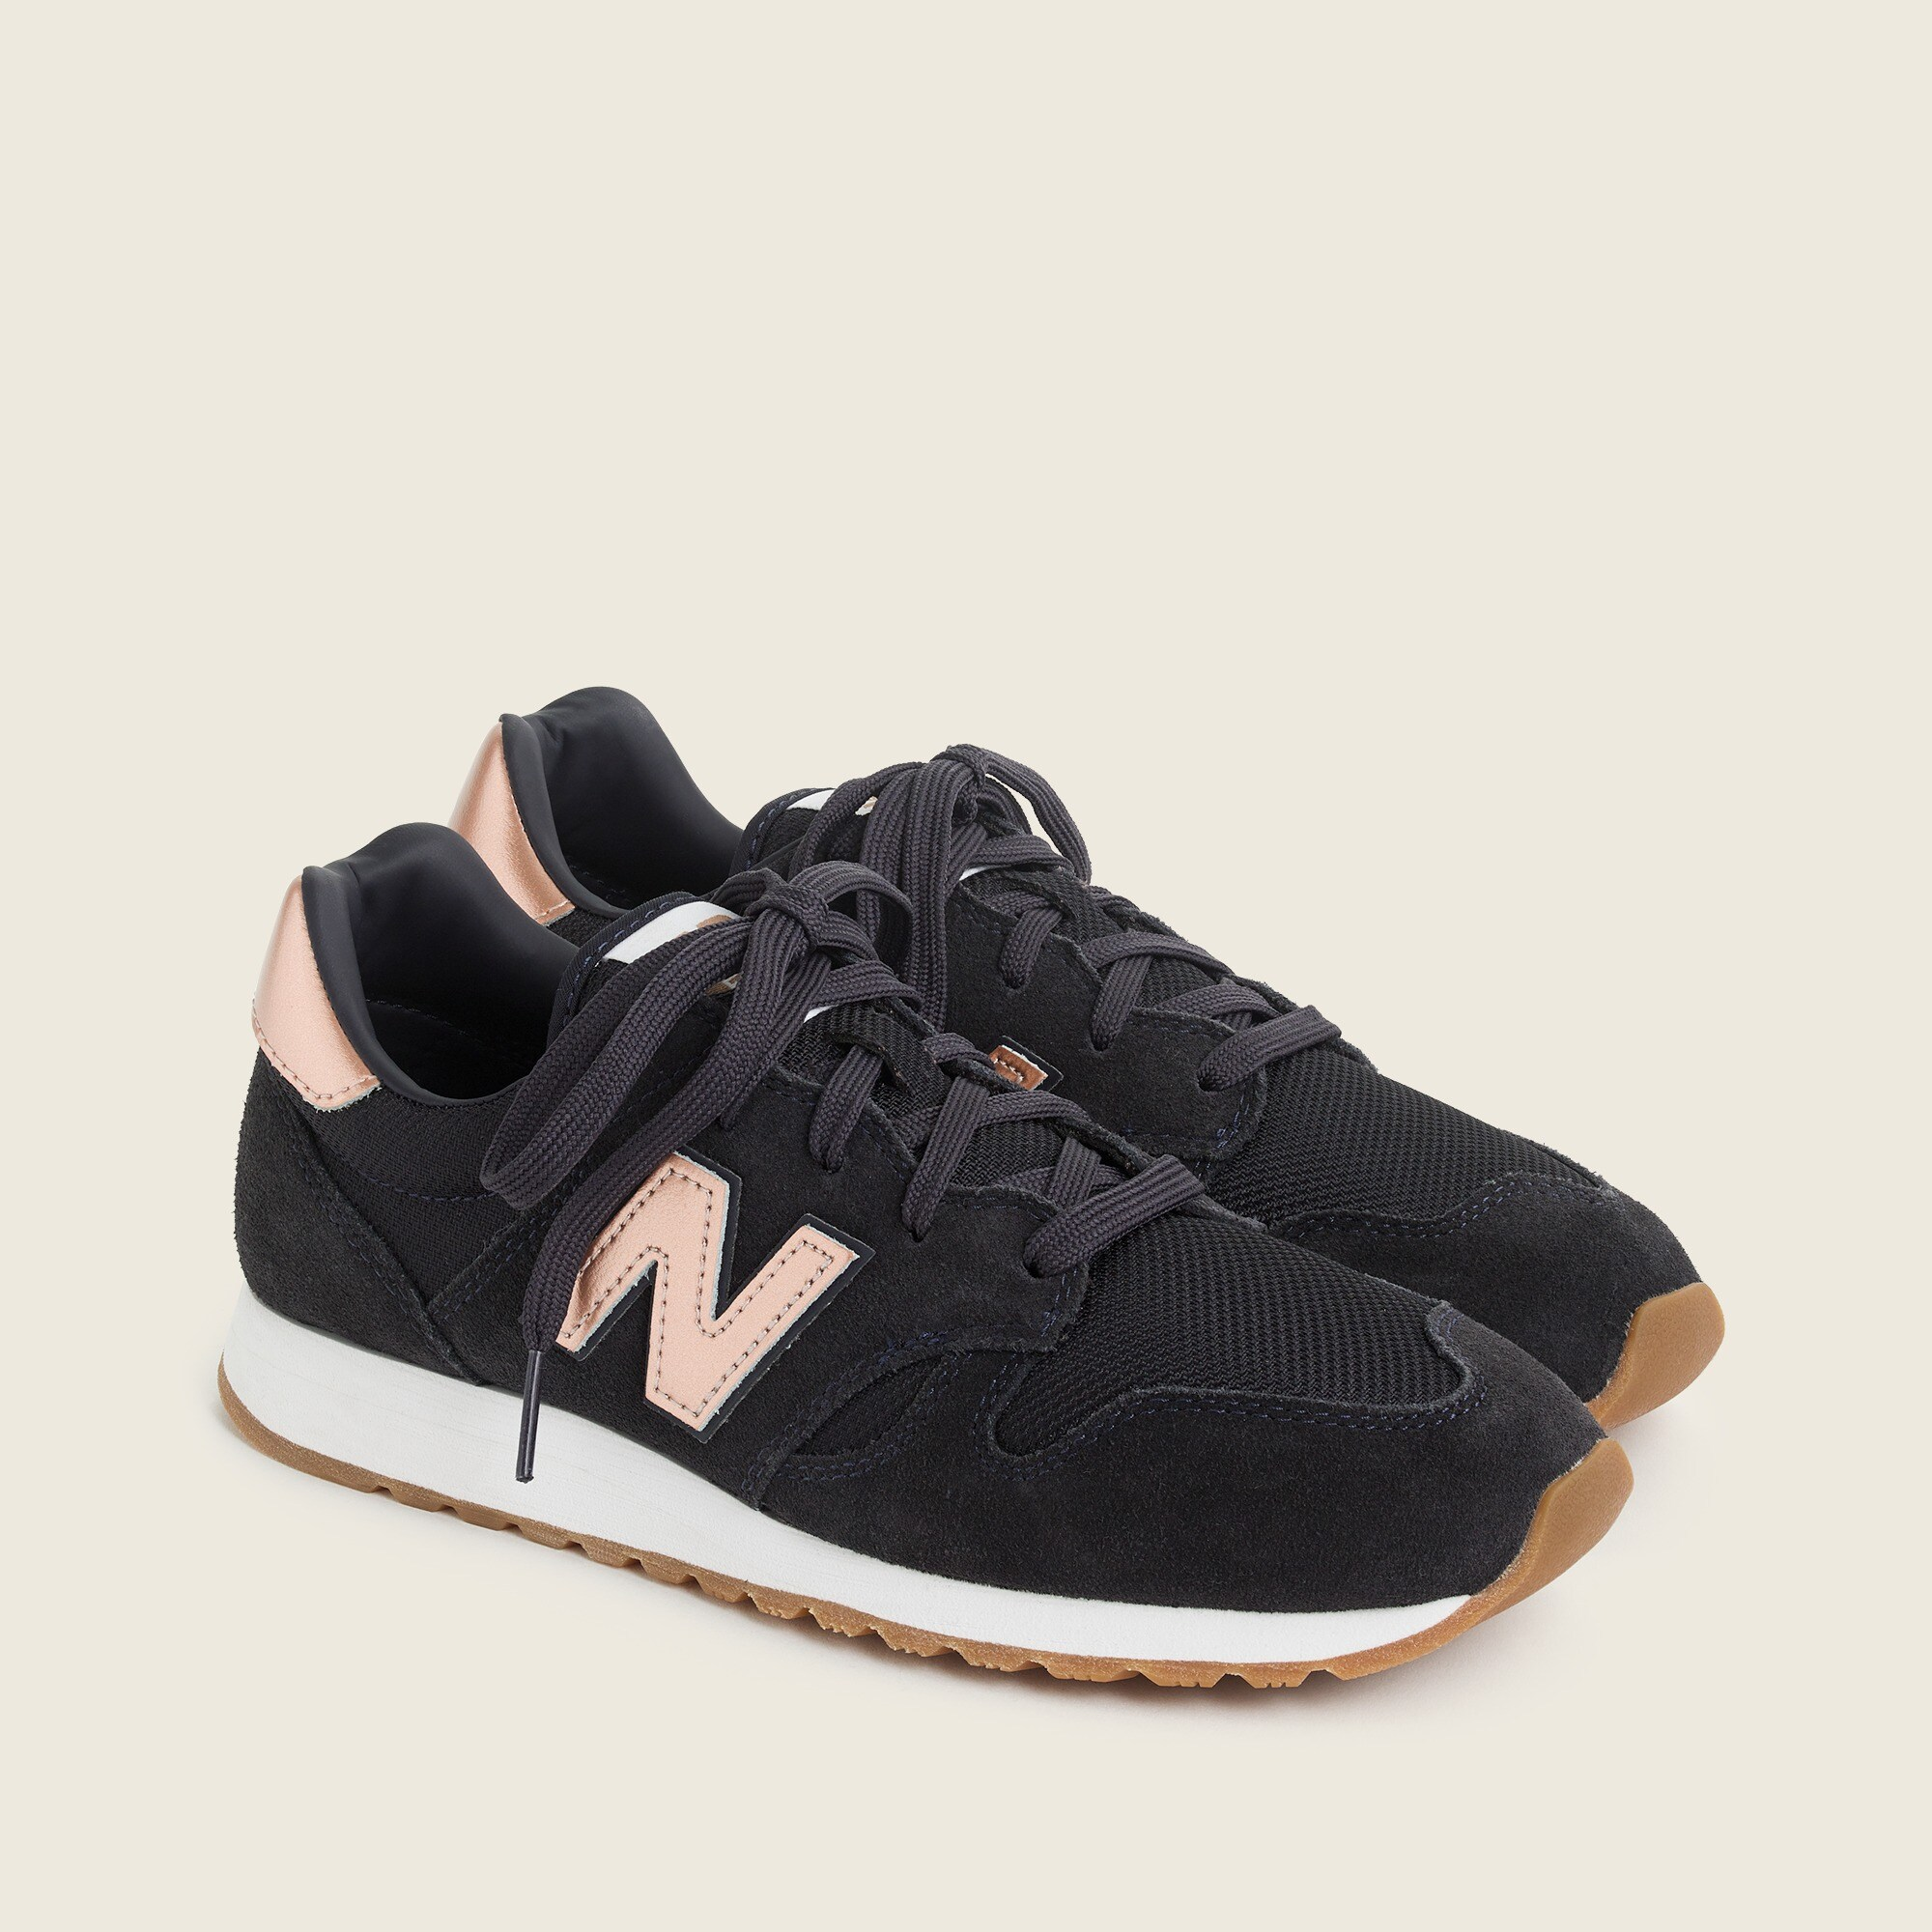 Women's New Balance® for J.Crew 520 sneakers